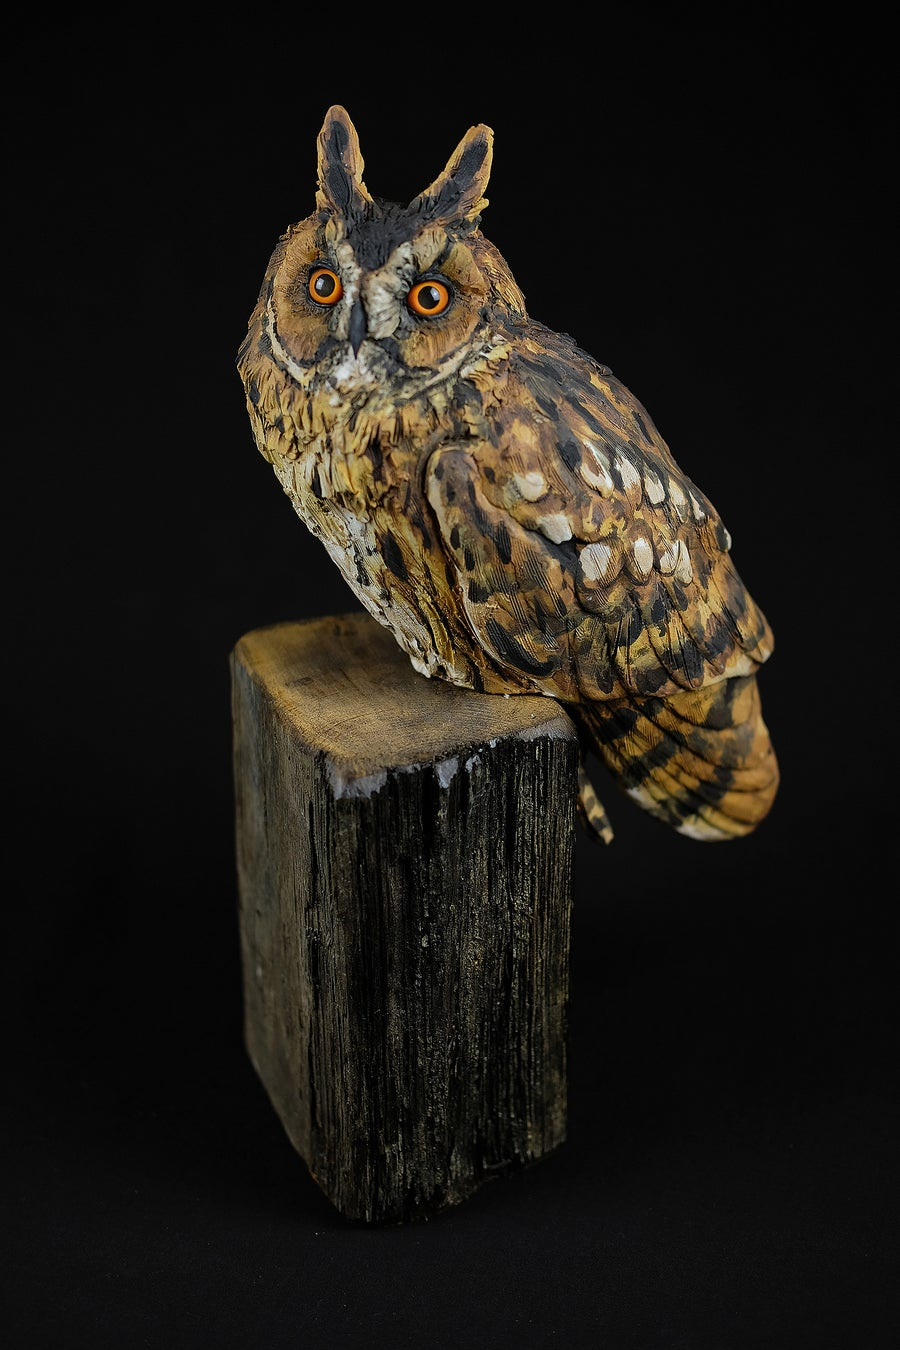 Image of KAREN FAWCETT 'LONG EARRED OWL' CERAMIC SCULPTURE